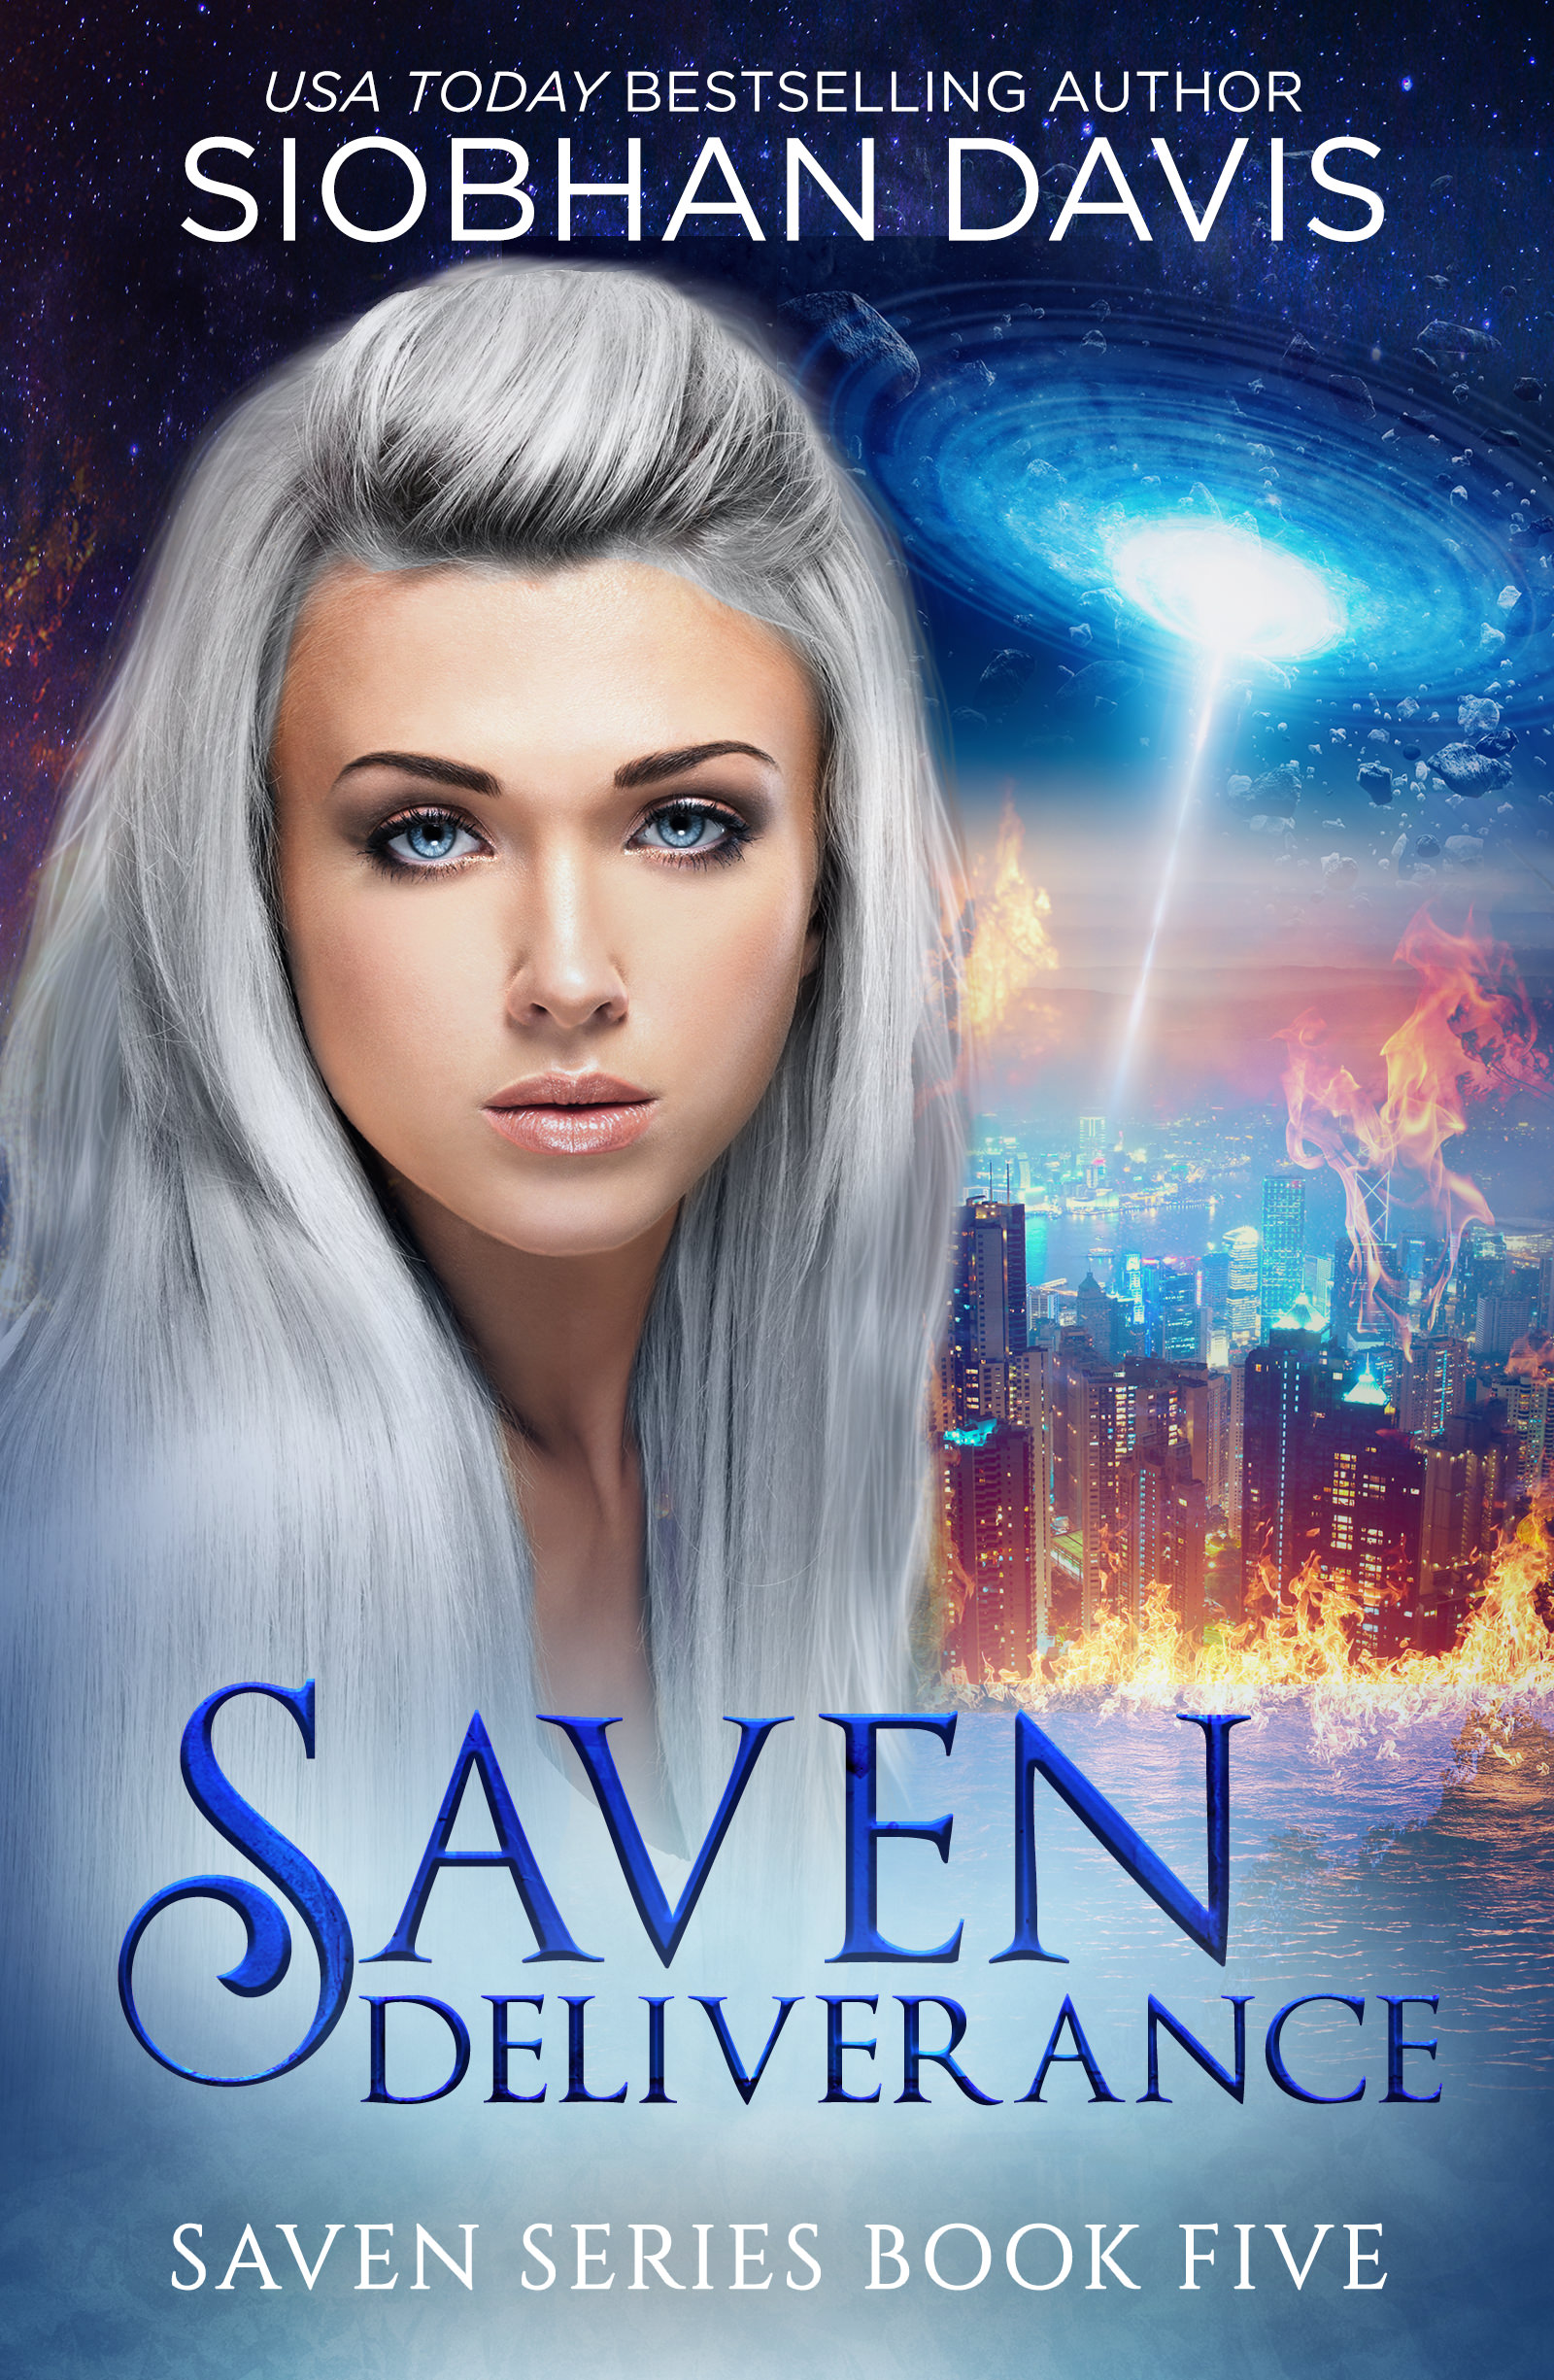 Saven: Deliverance (The Saven Series #5)